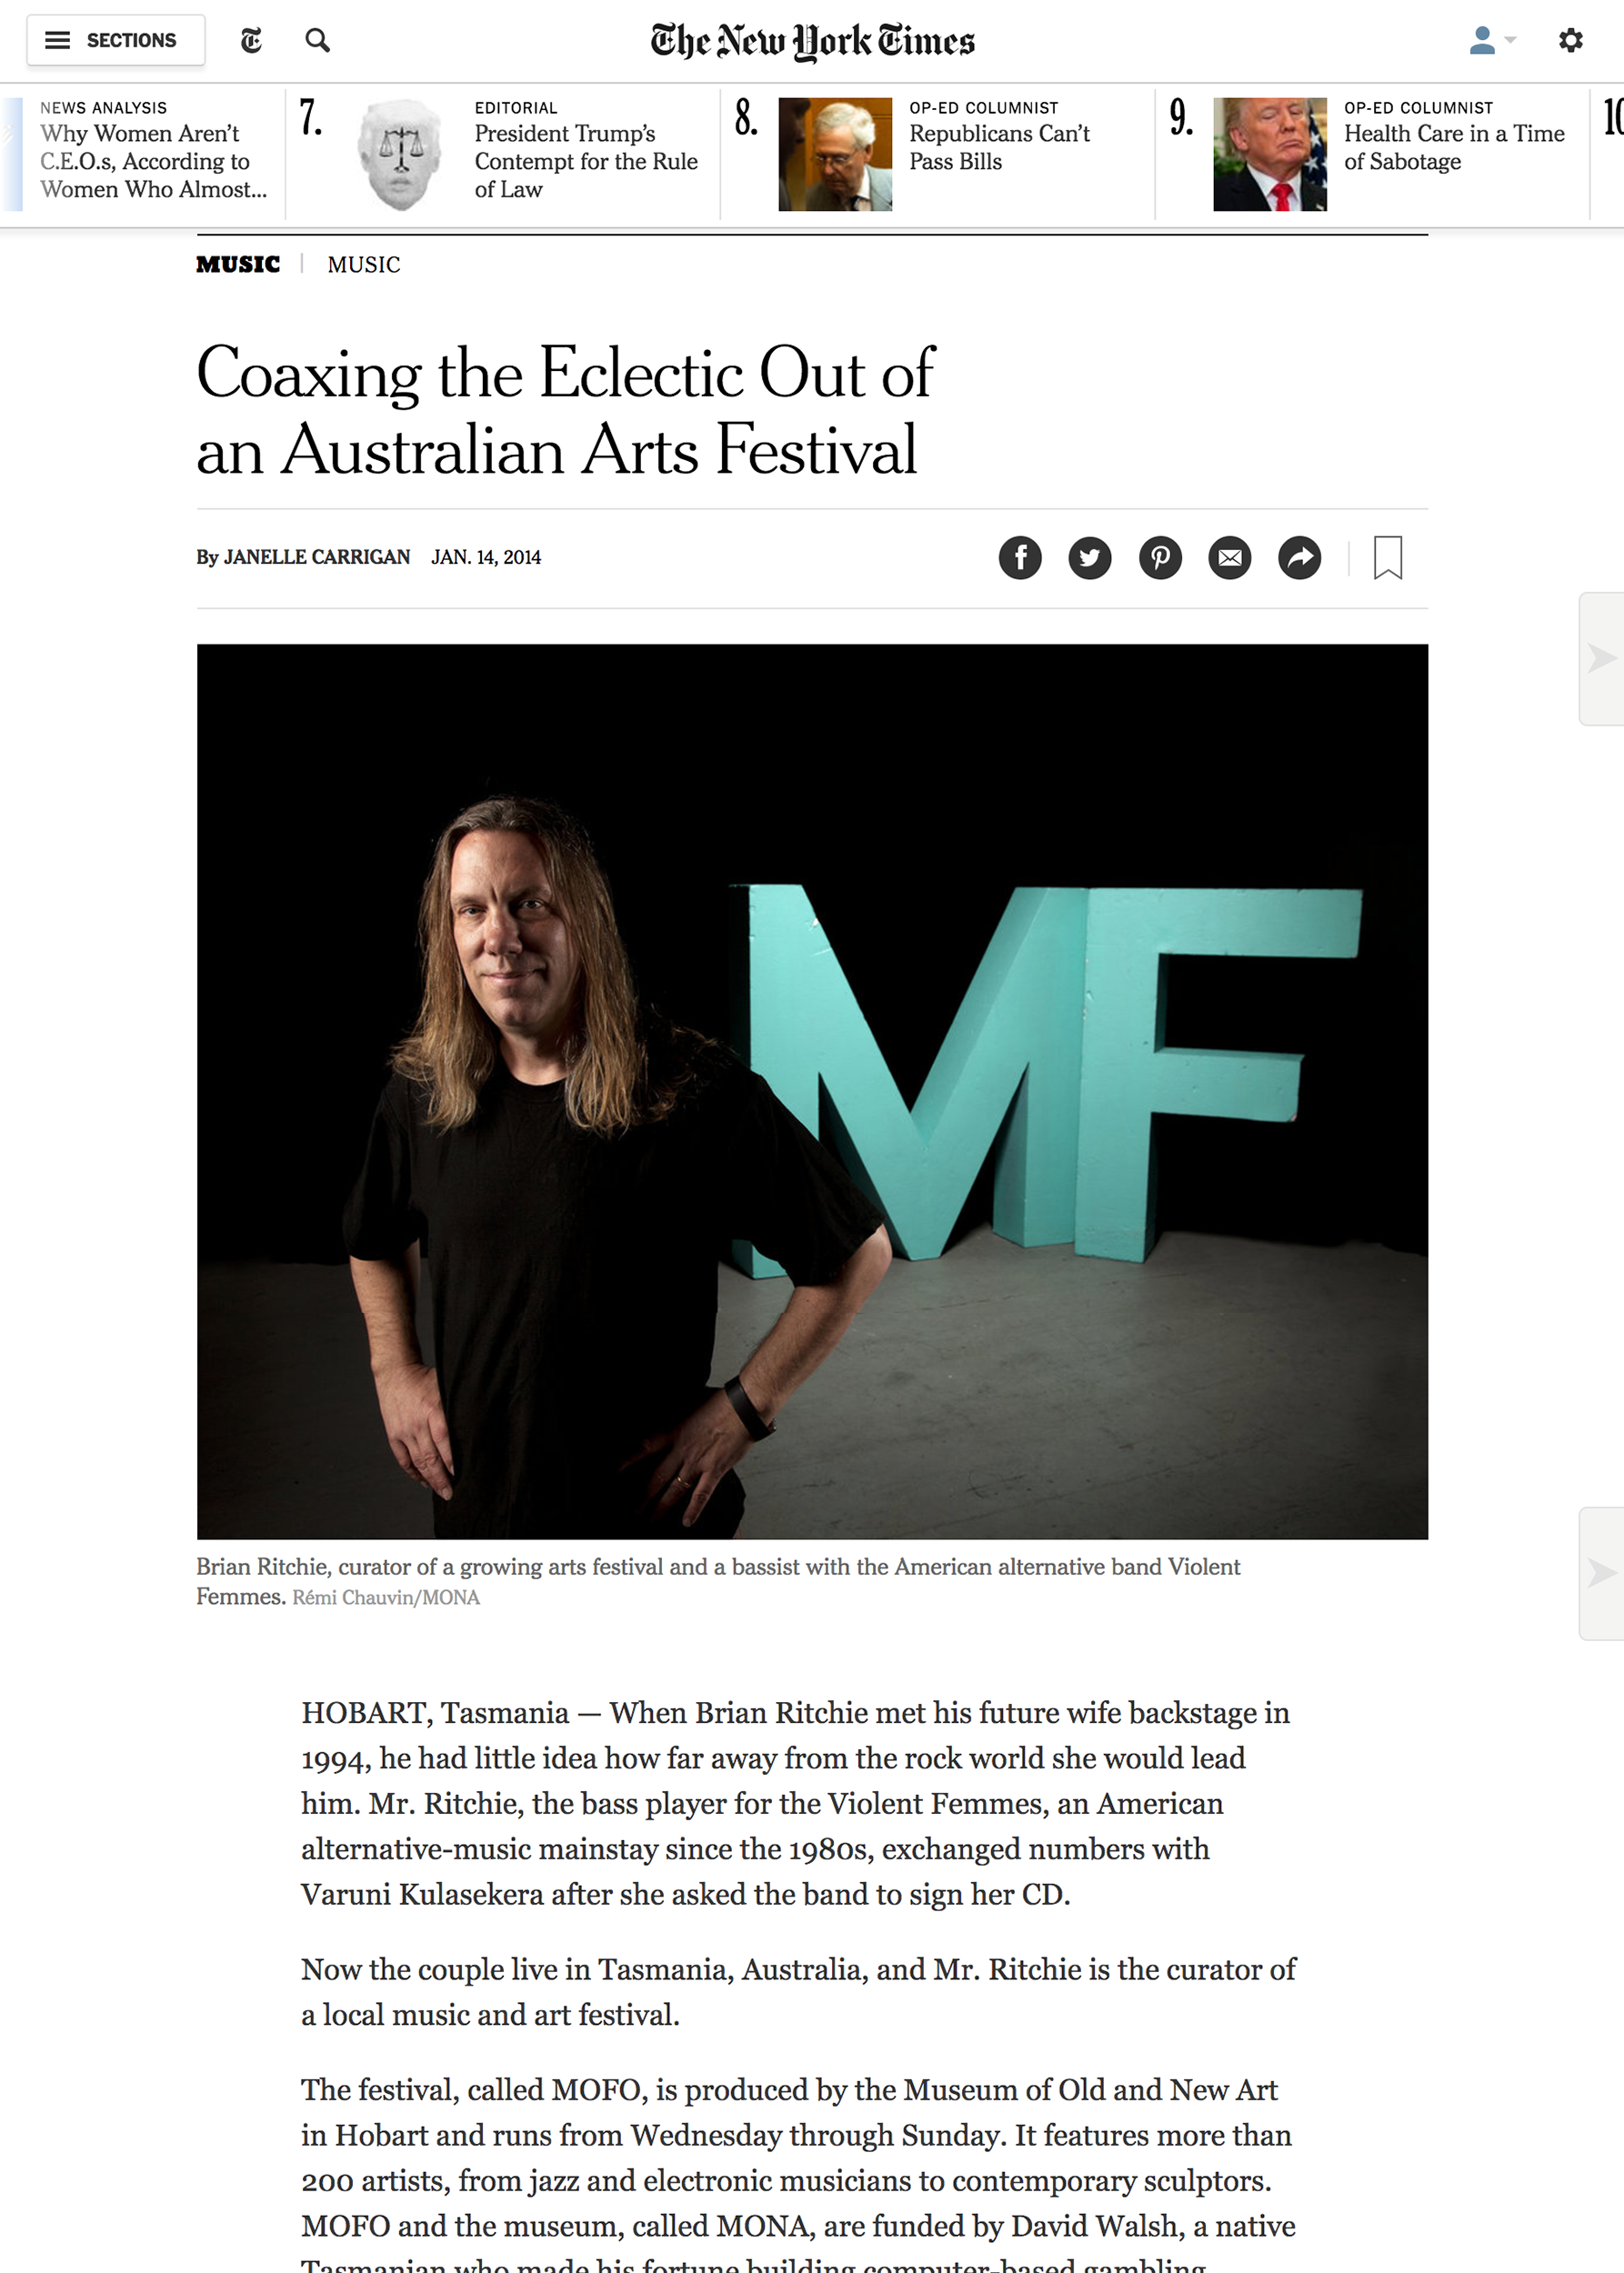 Coaxing Eclectic - The New York Times